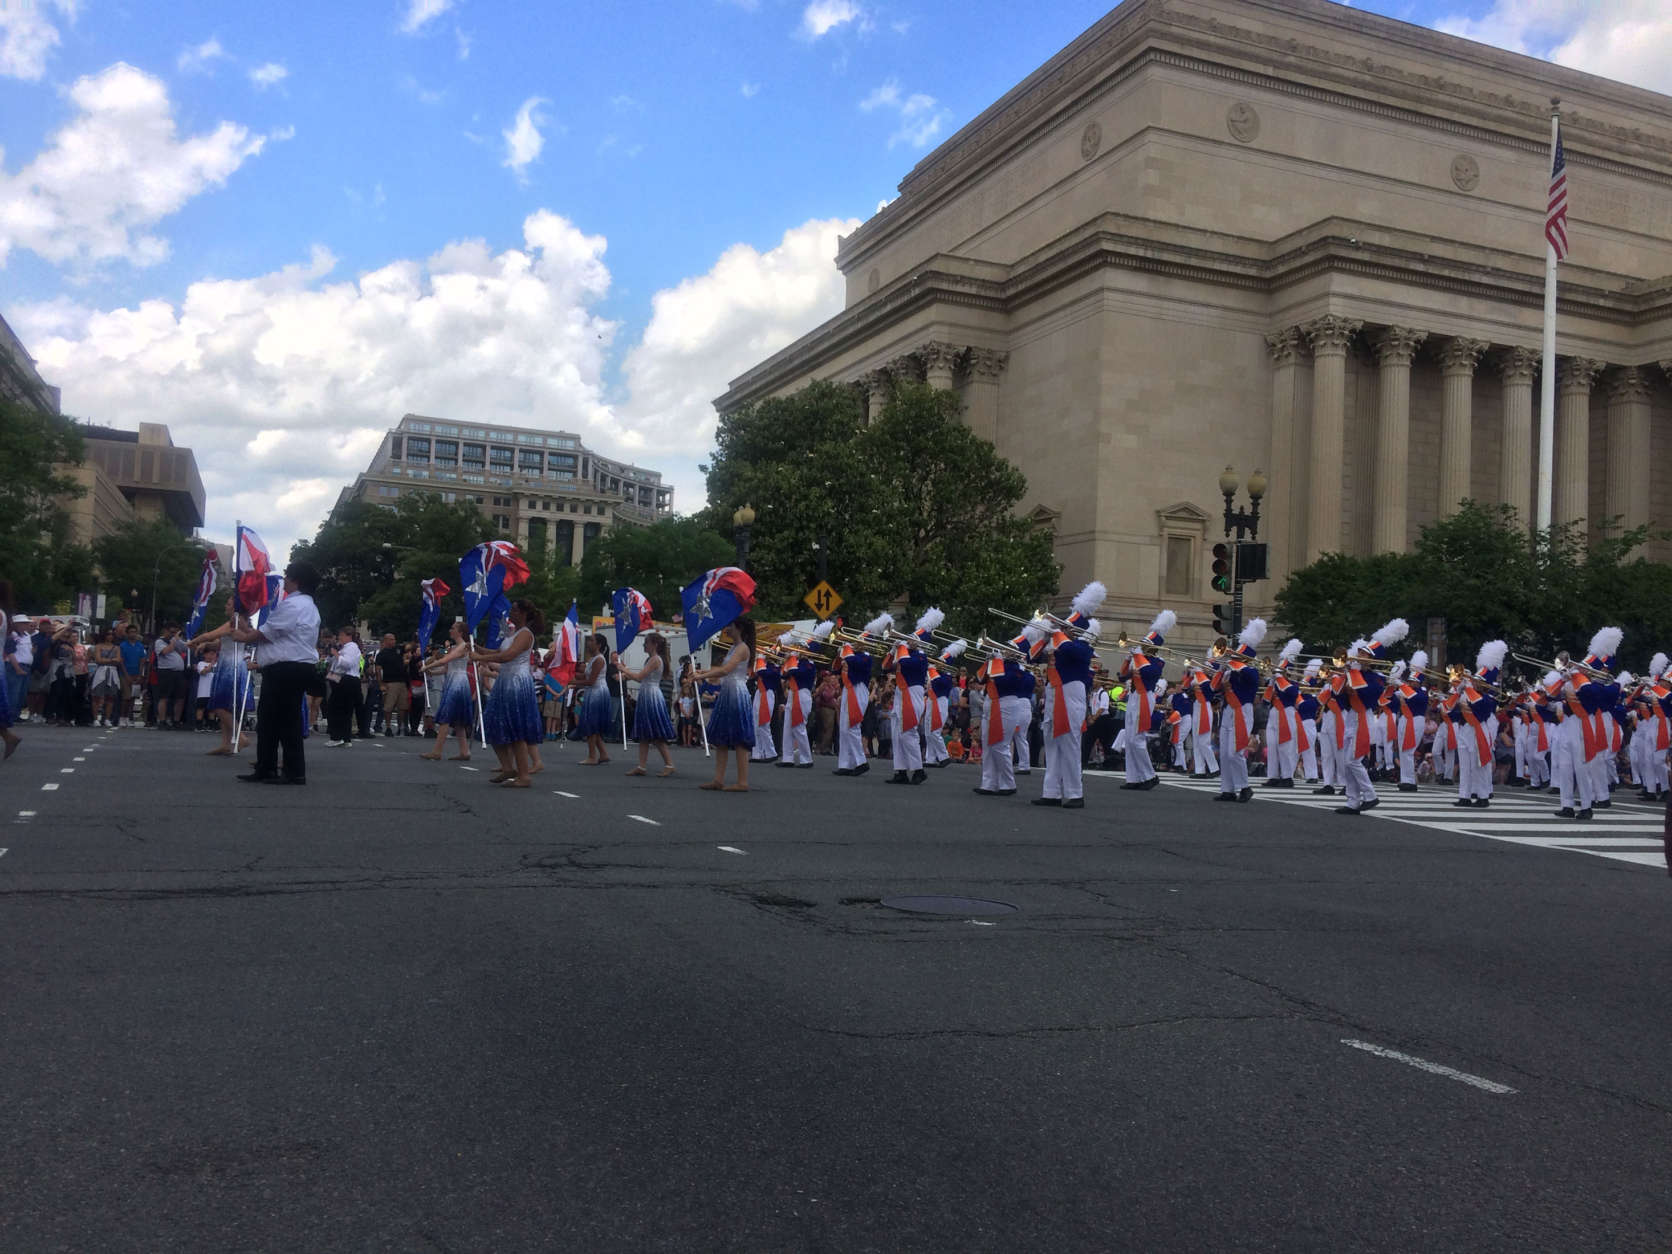 The National Memorial Day Parade heads down Constitution Avenue, in D.C., Monday. (WTOP/Dick Uliano)